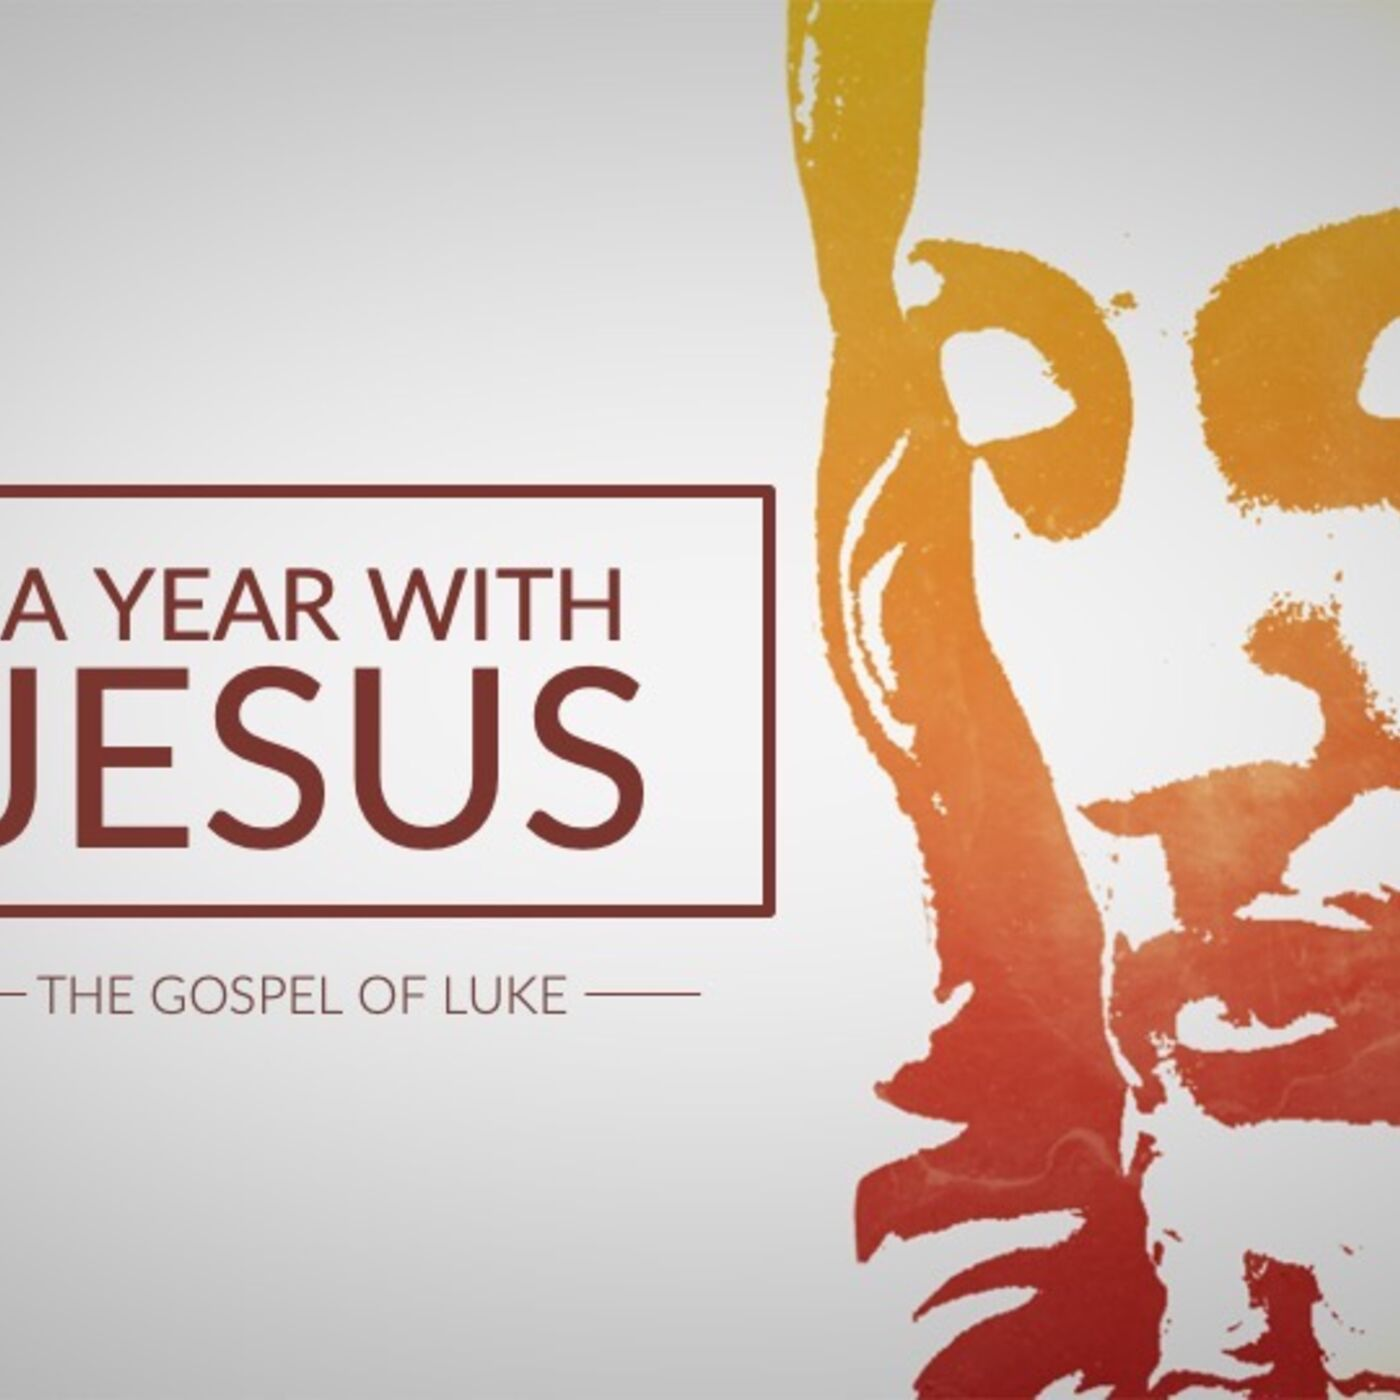 A Year With Jesus: Rejecting or Responding to Jesus (Luke 10:10-24)